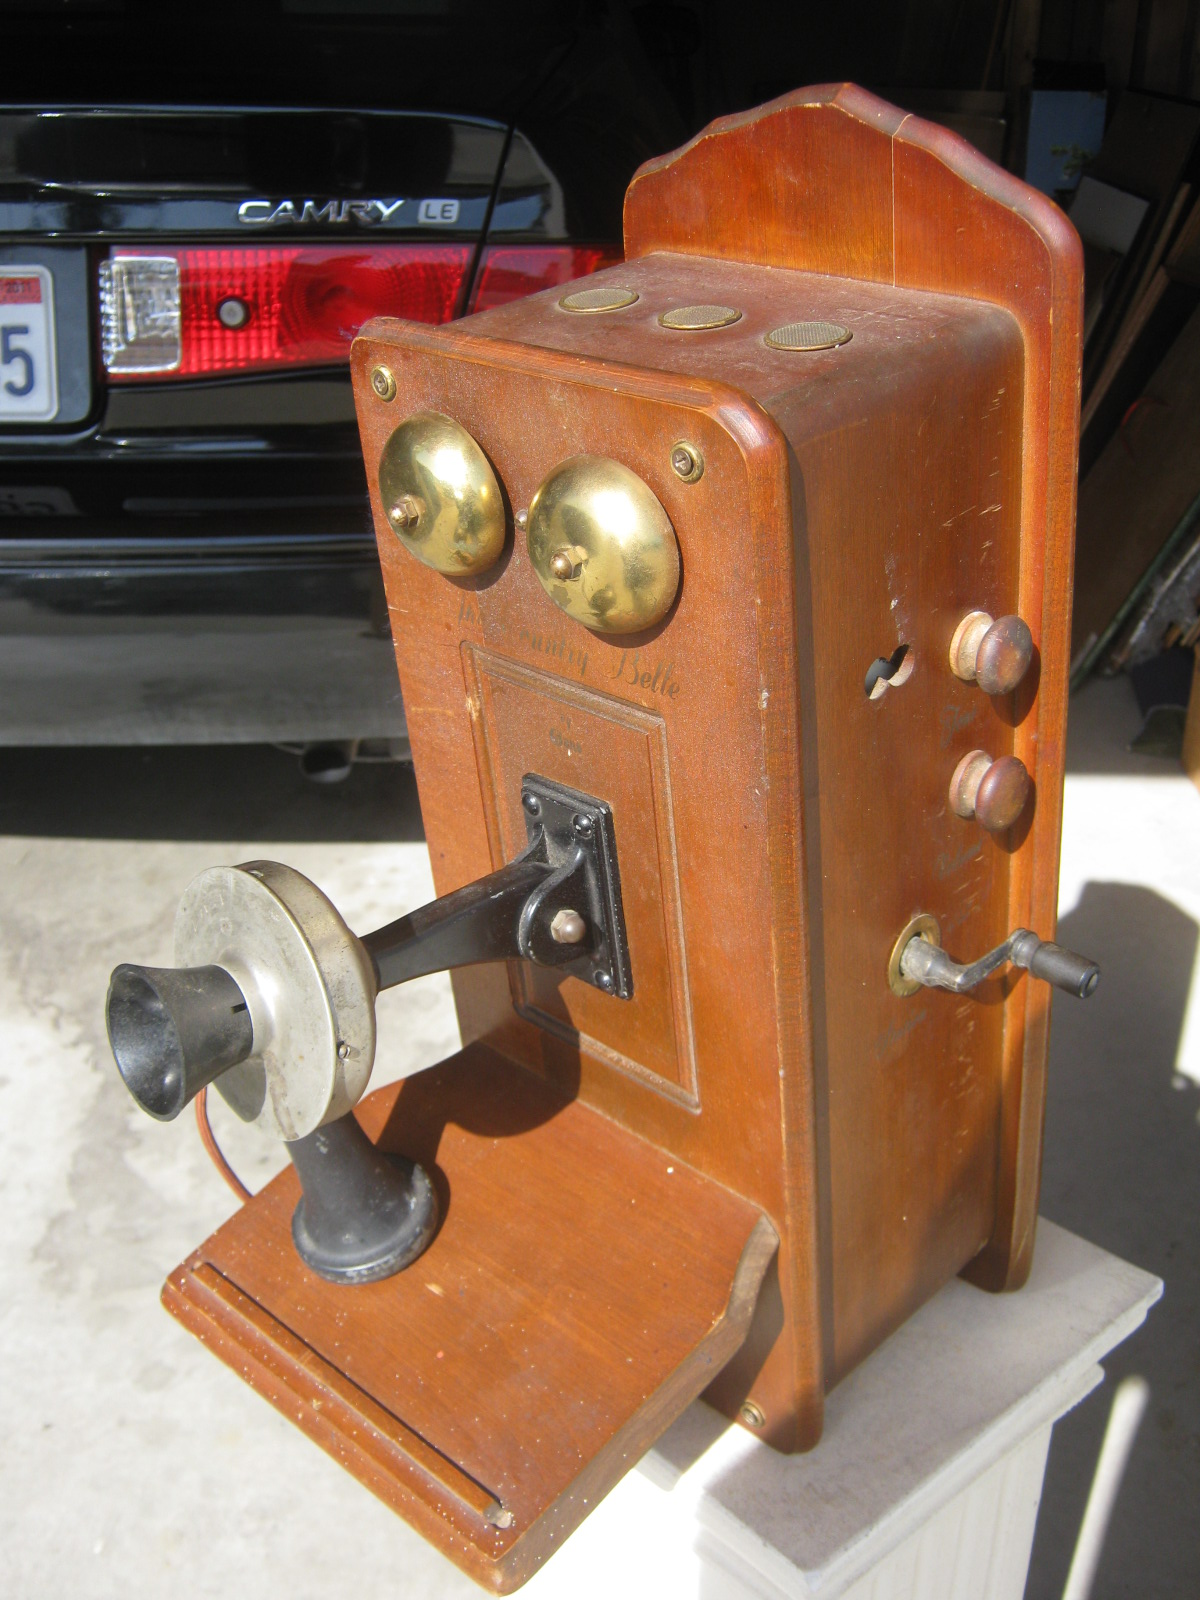 The Radio Builder Valve Shaped Like Old Telephone Zn414 Portable Am Receiver Resembles An Early 1900s Wall On Off Switch Is Tuner Crank And Knobs Are For Tone Volume